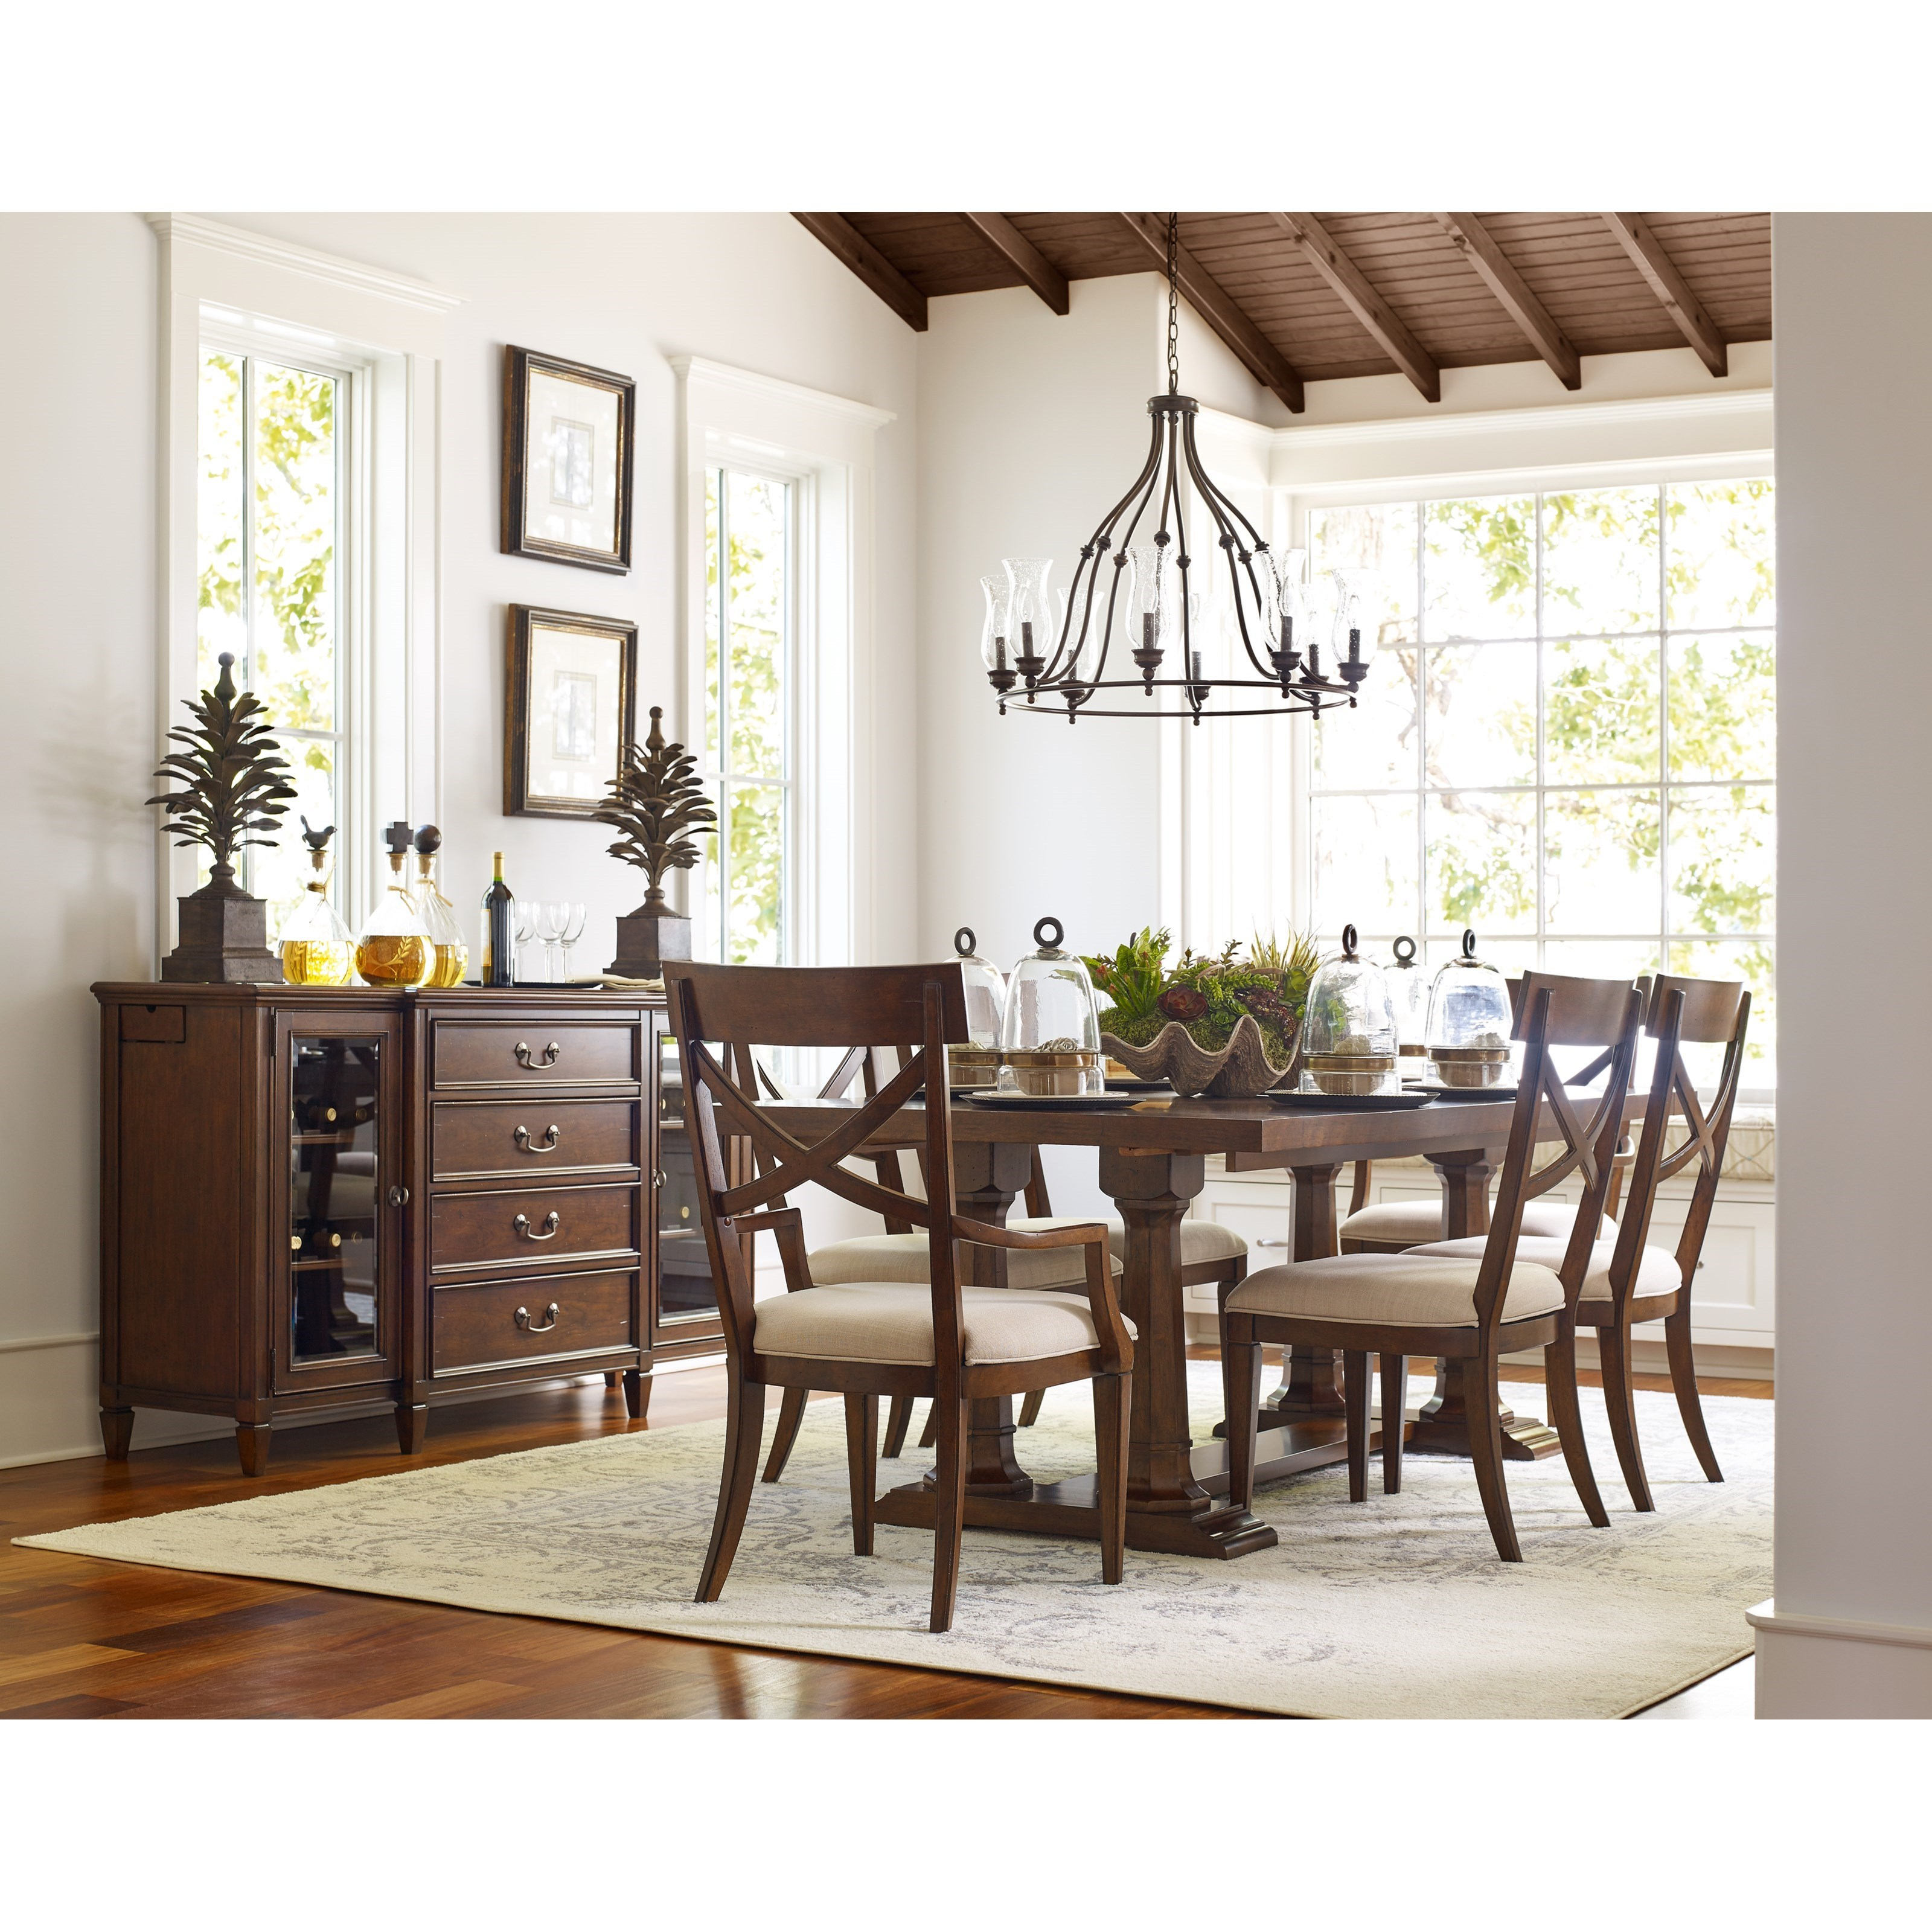 formal dining room set. Rachael Ray Home by Legacy Classic Upstate Formal Dining Room Group  Washington DC Northern Virginia